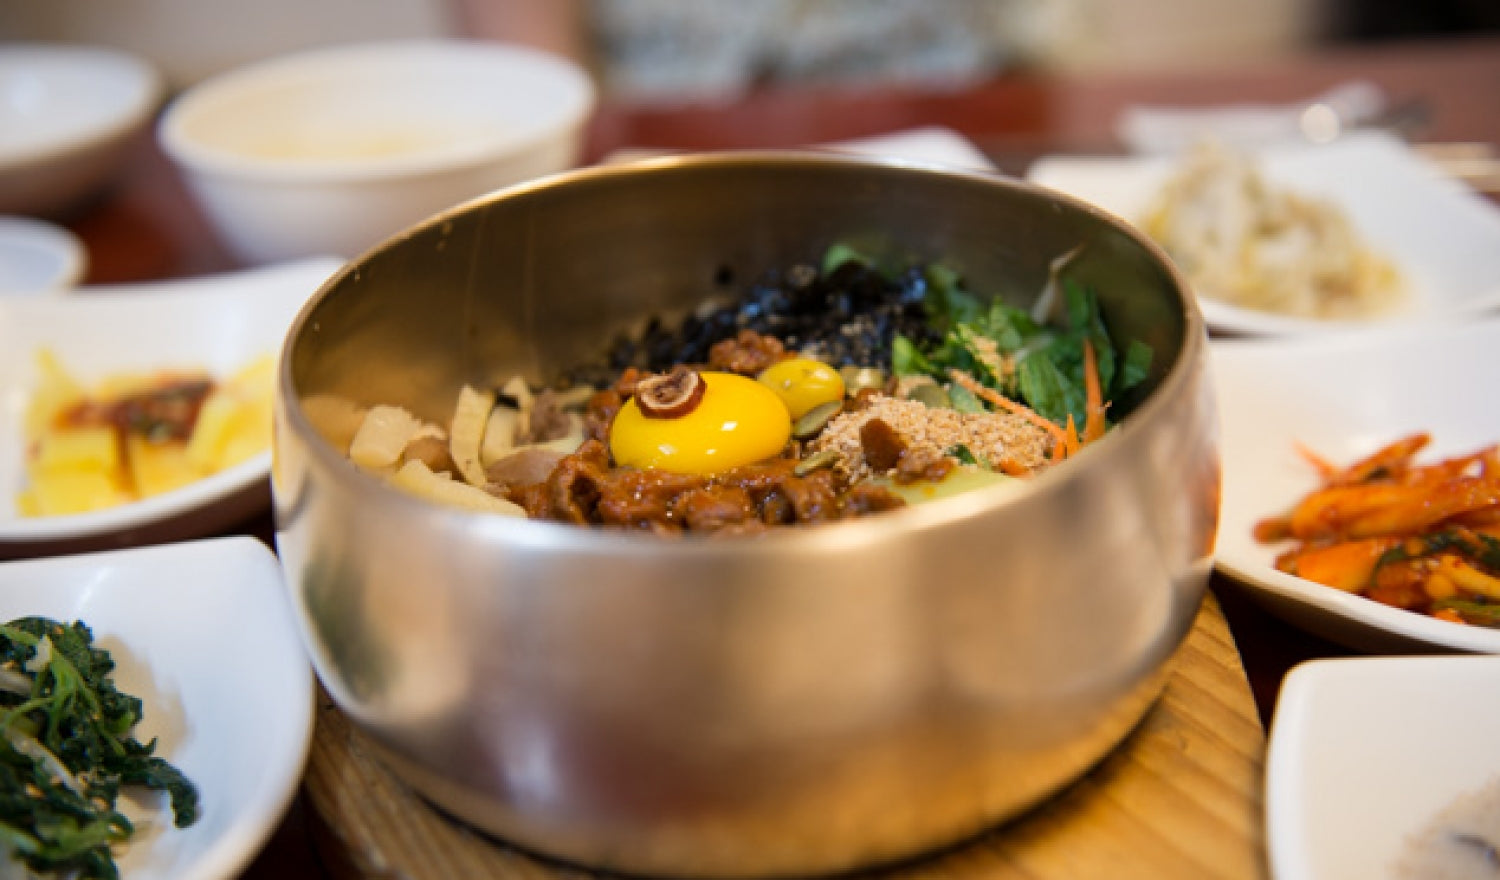 The Beginner's Guide To Bibimbap - Step-by-Step Recipe